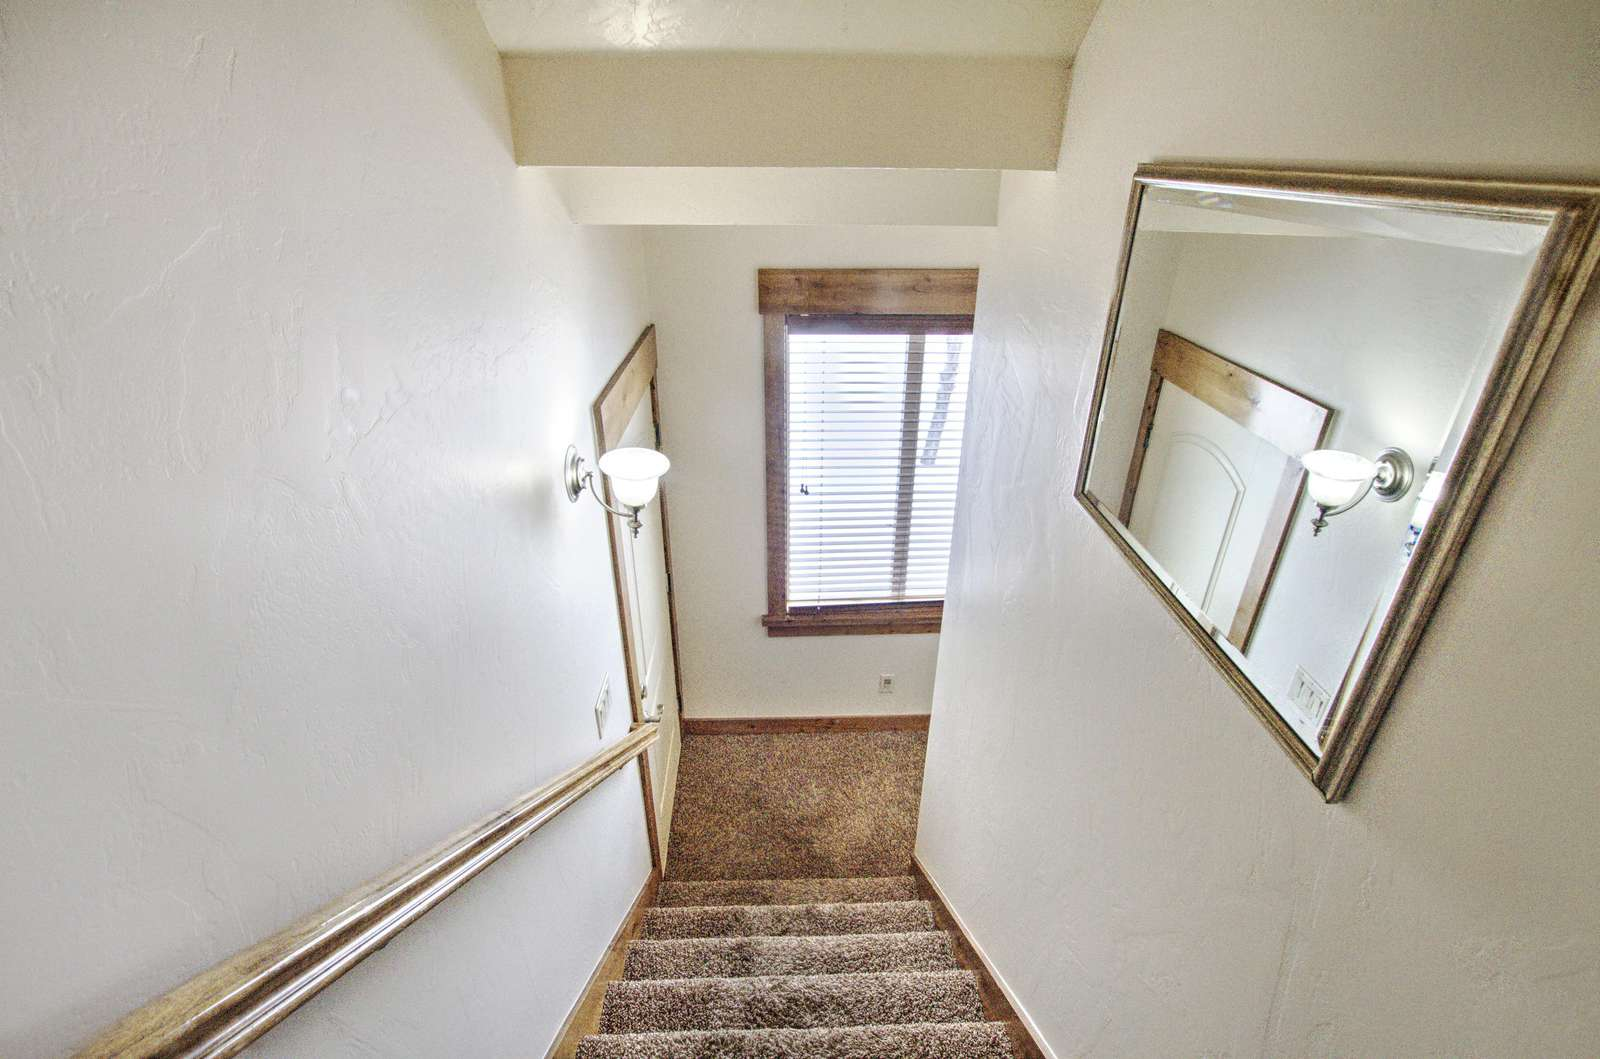 Stairs to basement floor